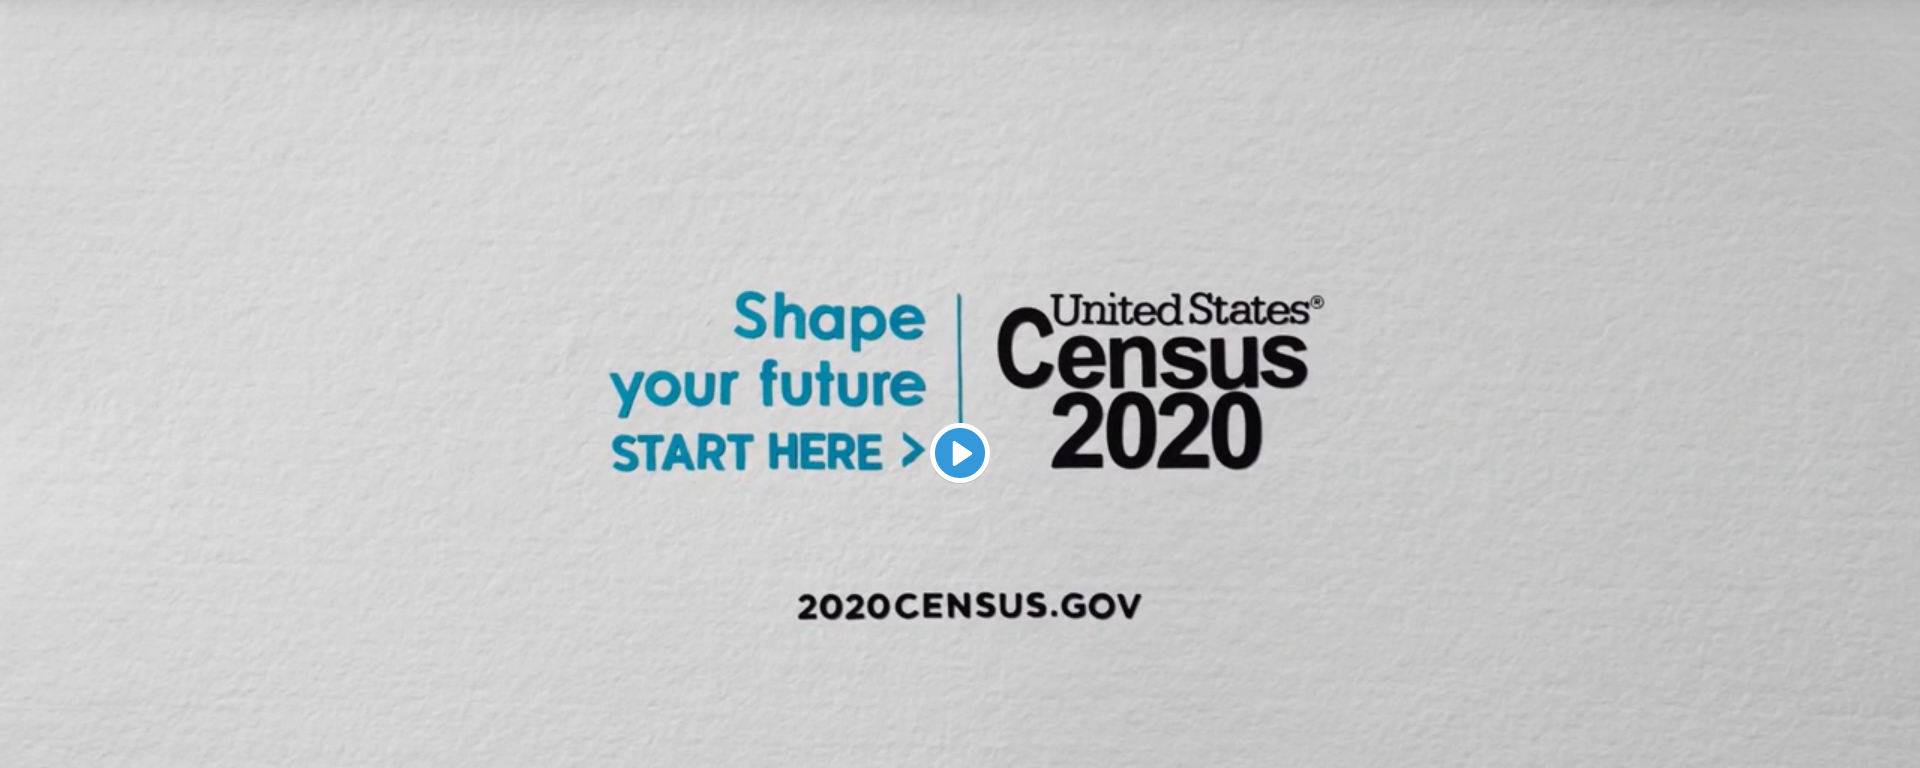 How Do I Take The 2020 Census